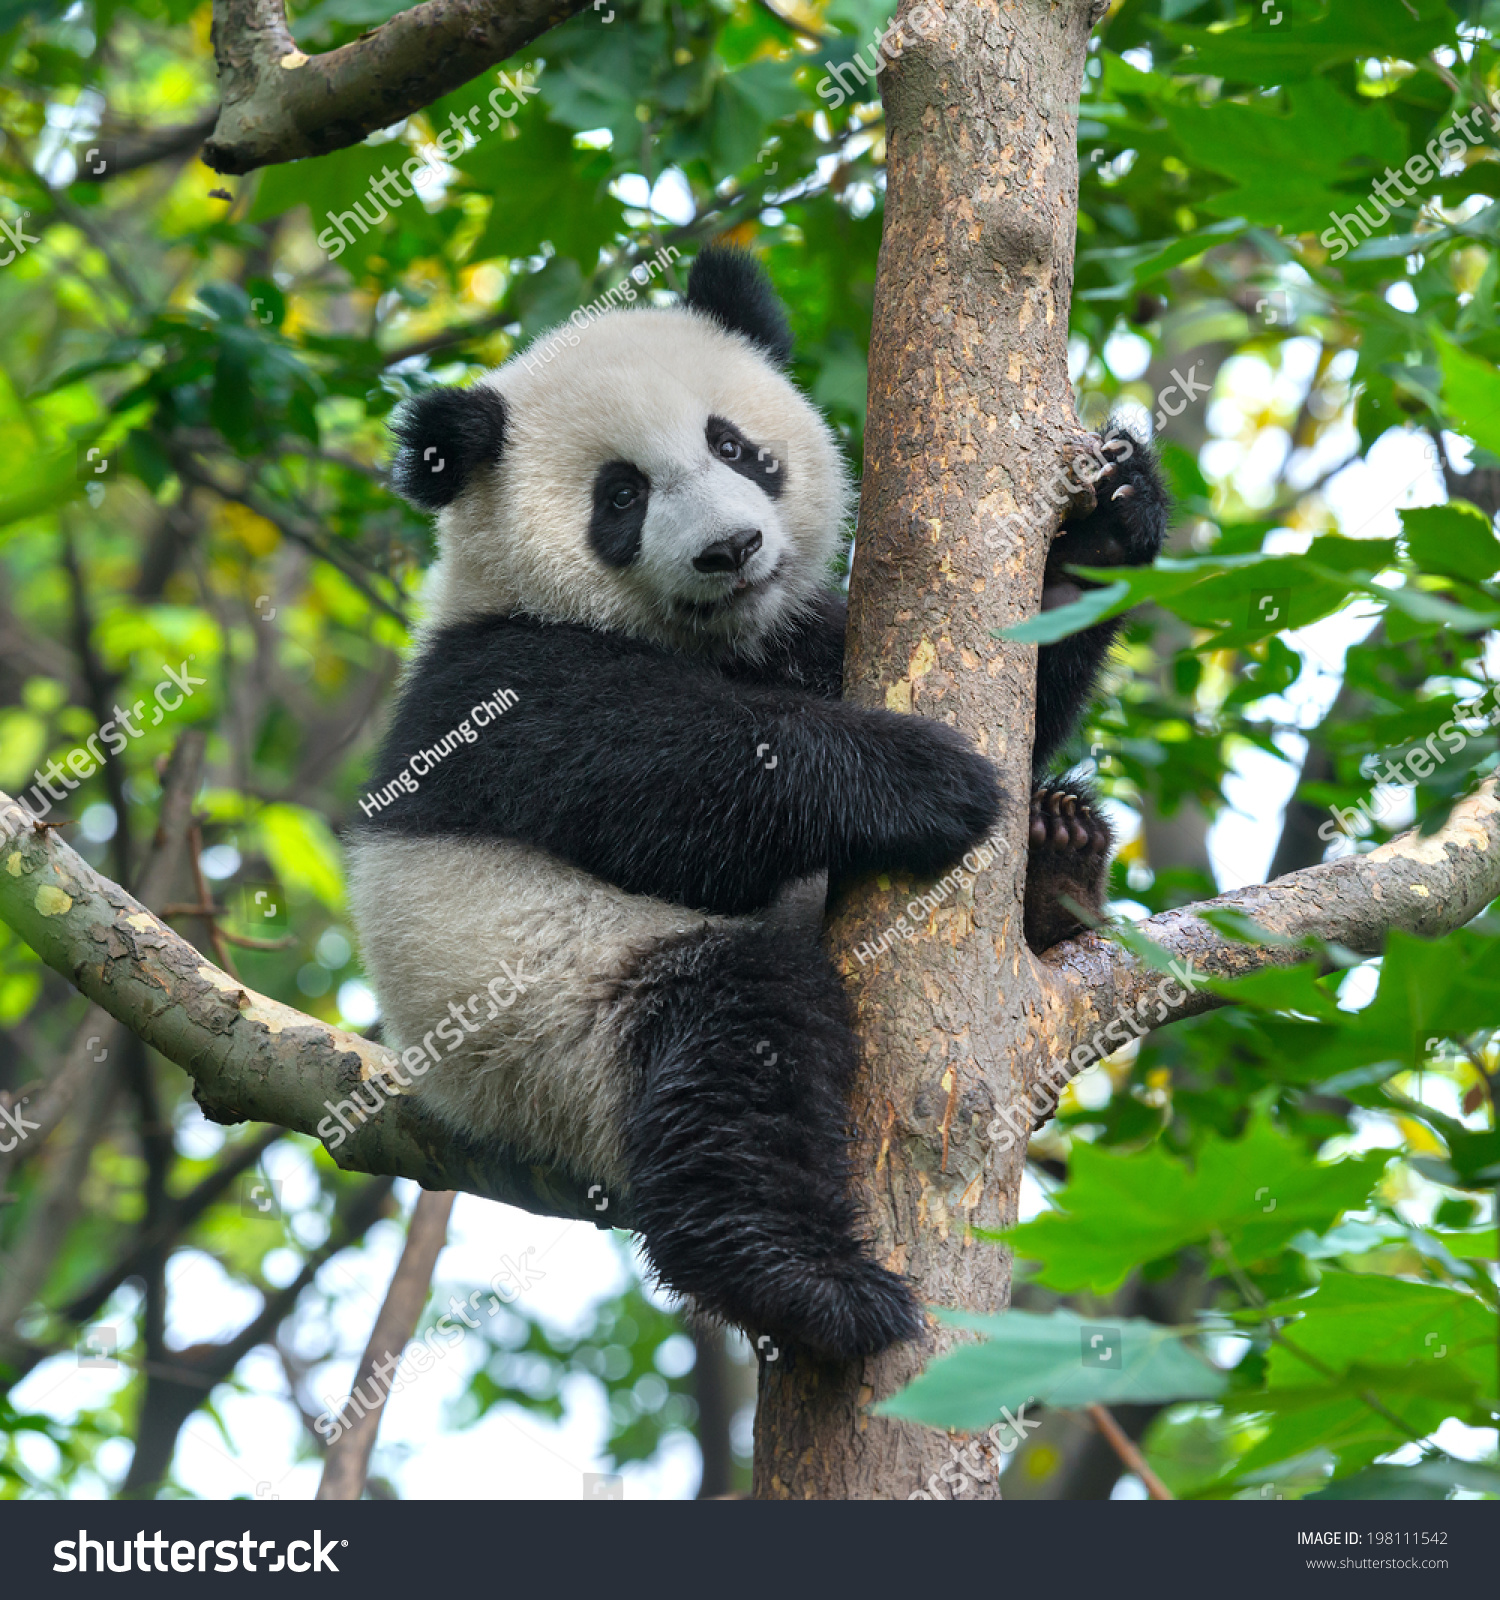 Panda Bear In Tree Stock Photo 198111542 : Shutterstock